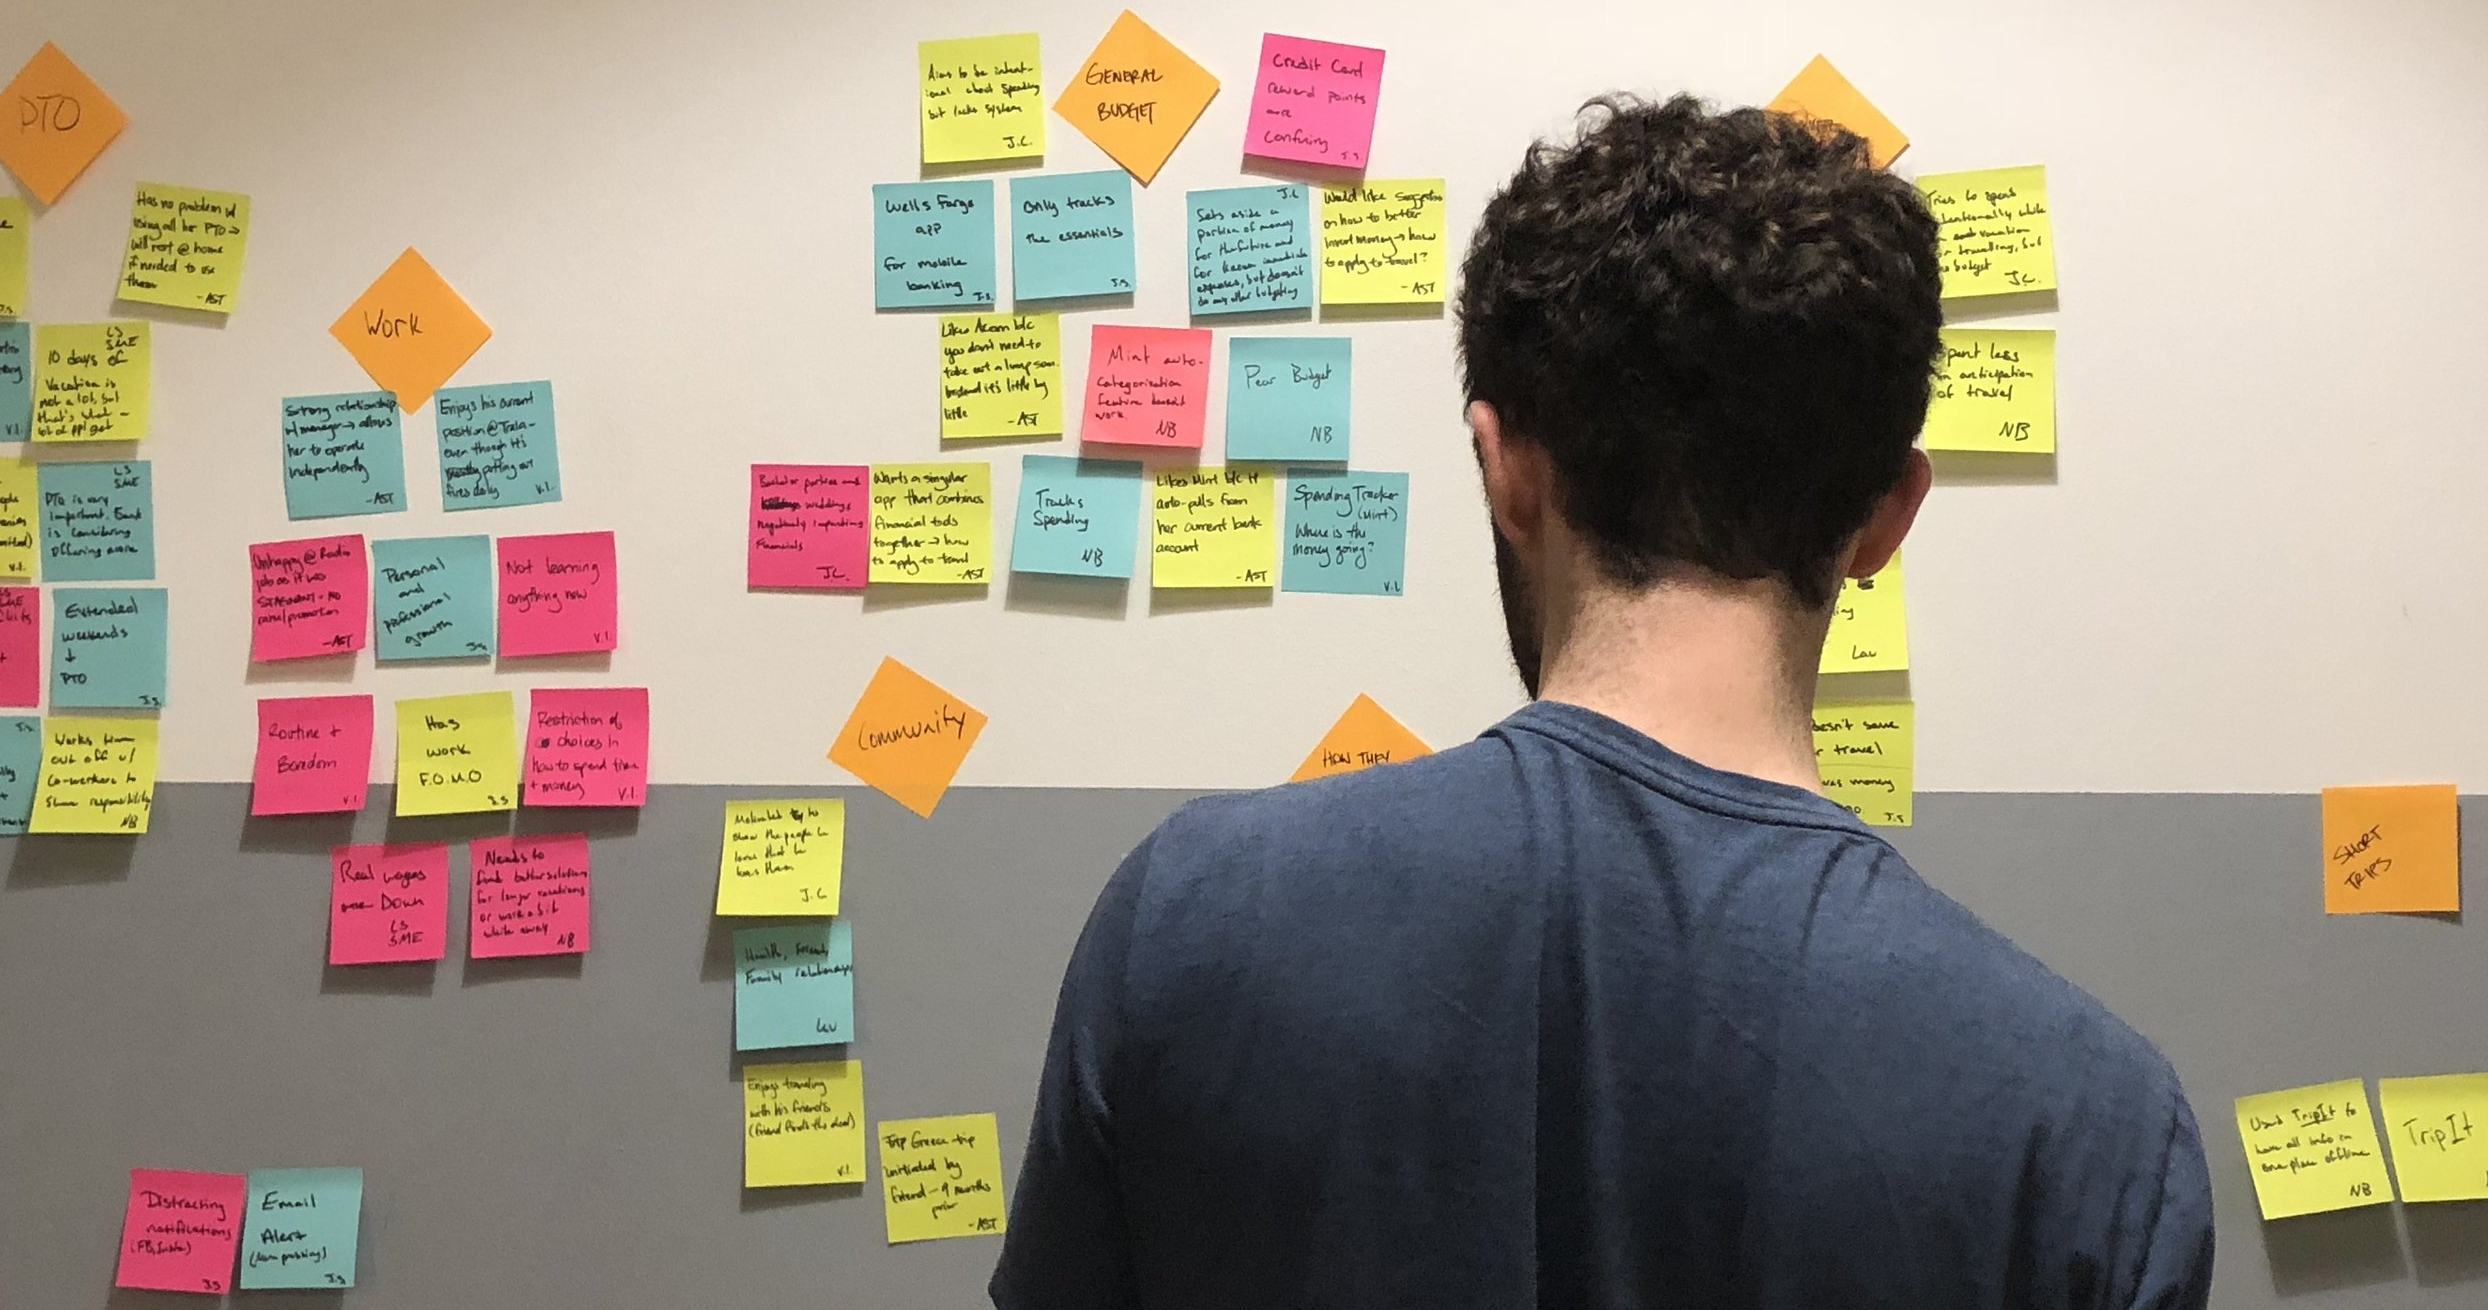 We returned to our affinity diagram throughout the entire project to validate our design decisions, even after we produced a problem statement and design principles.